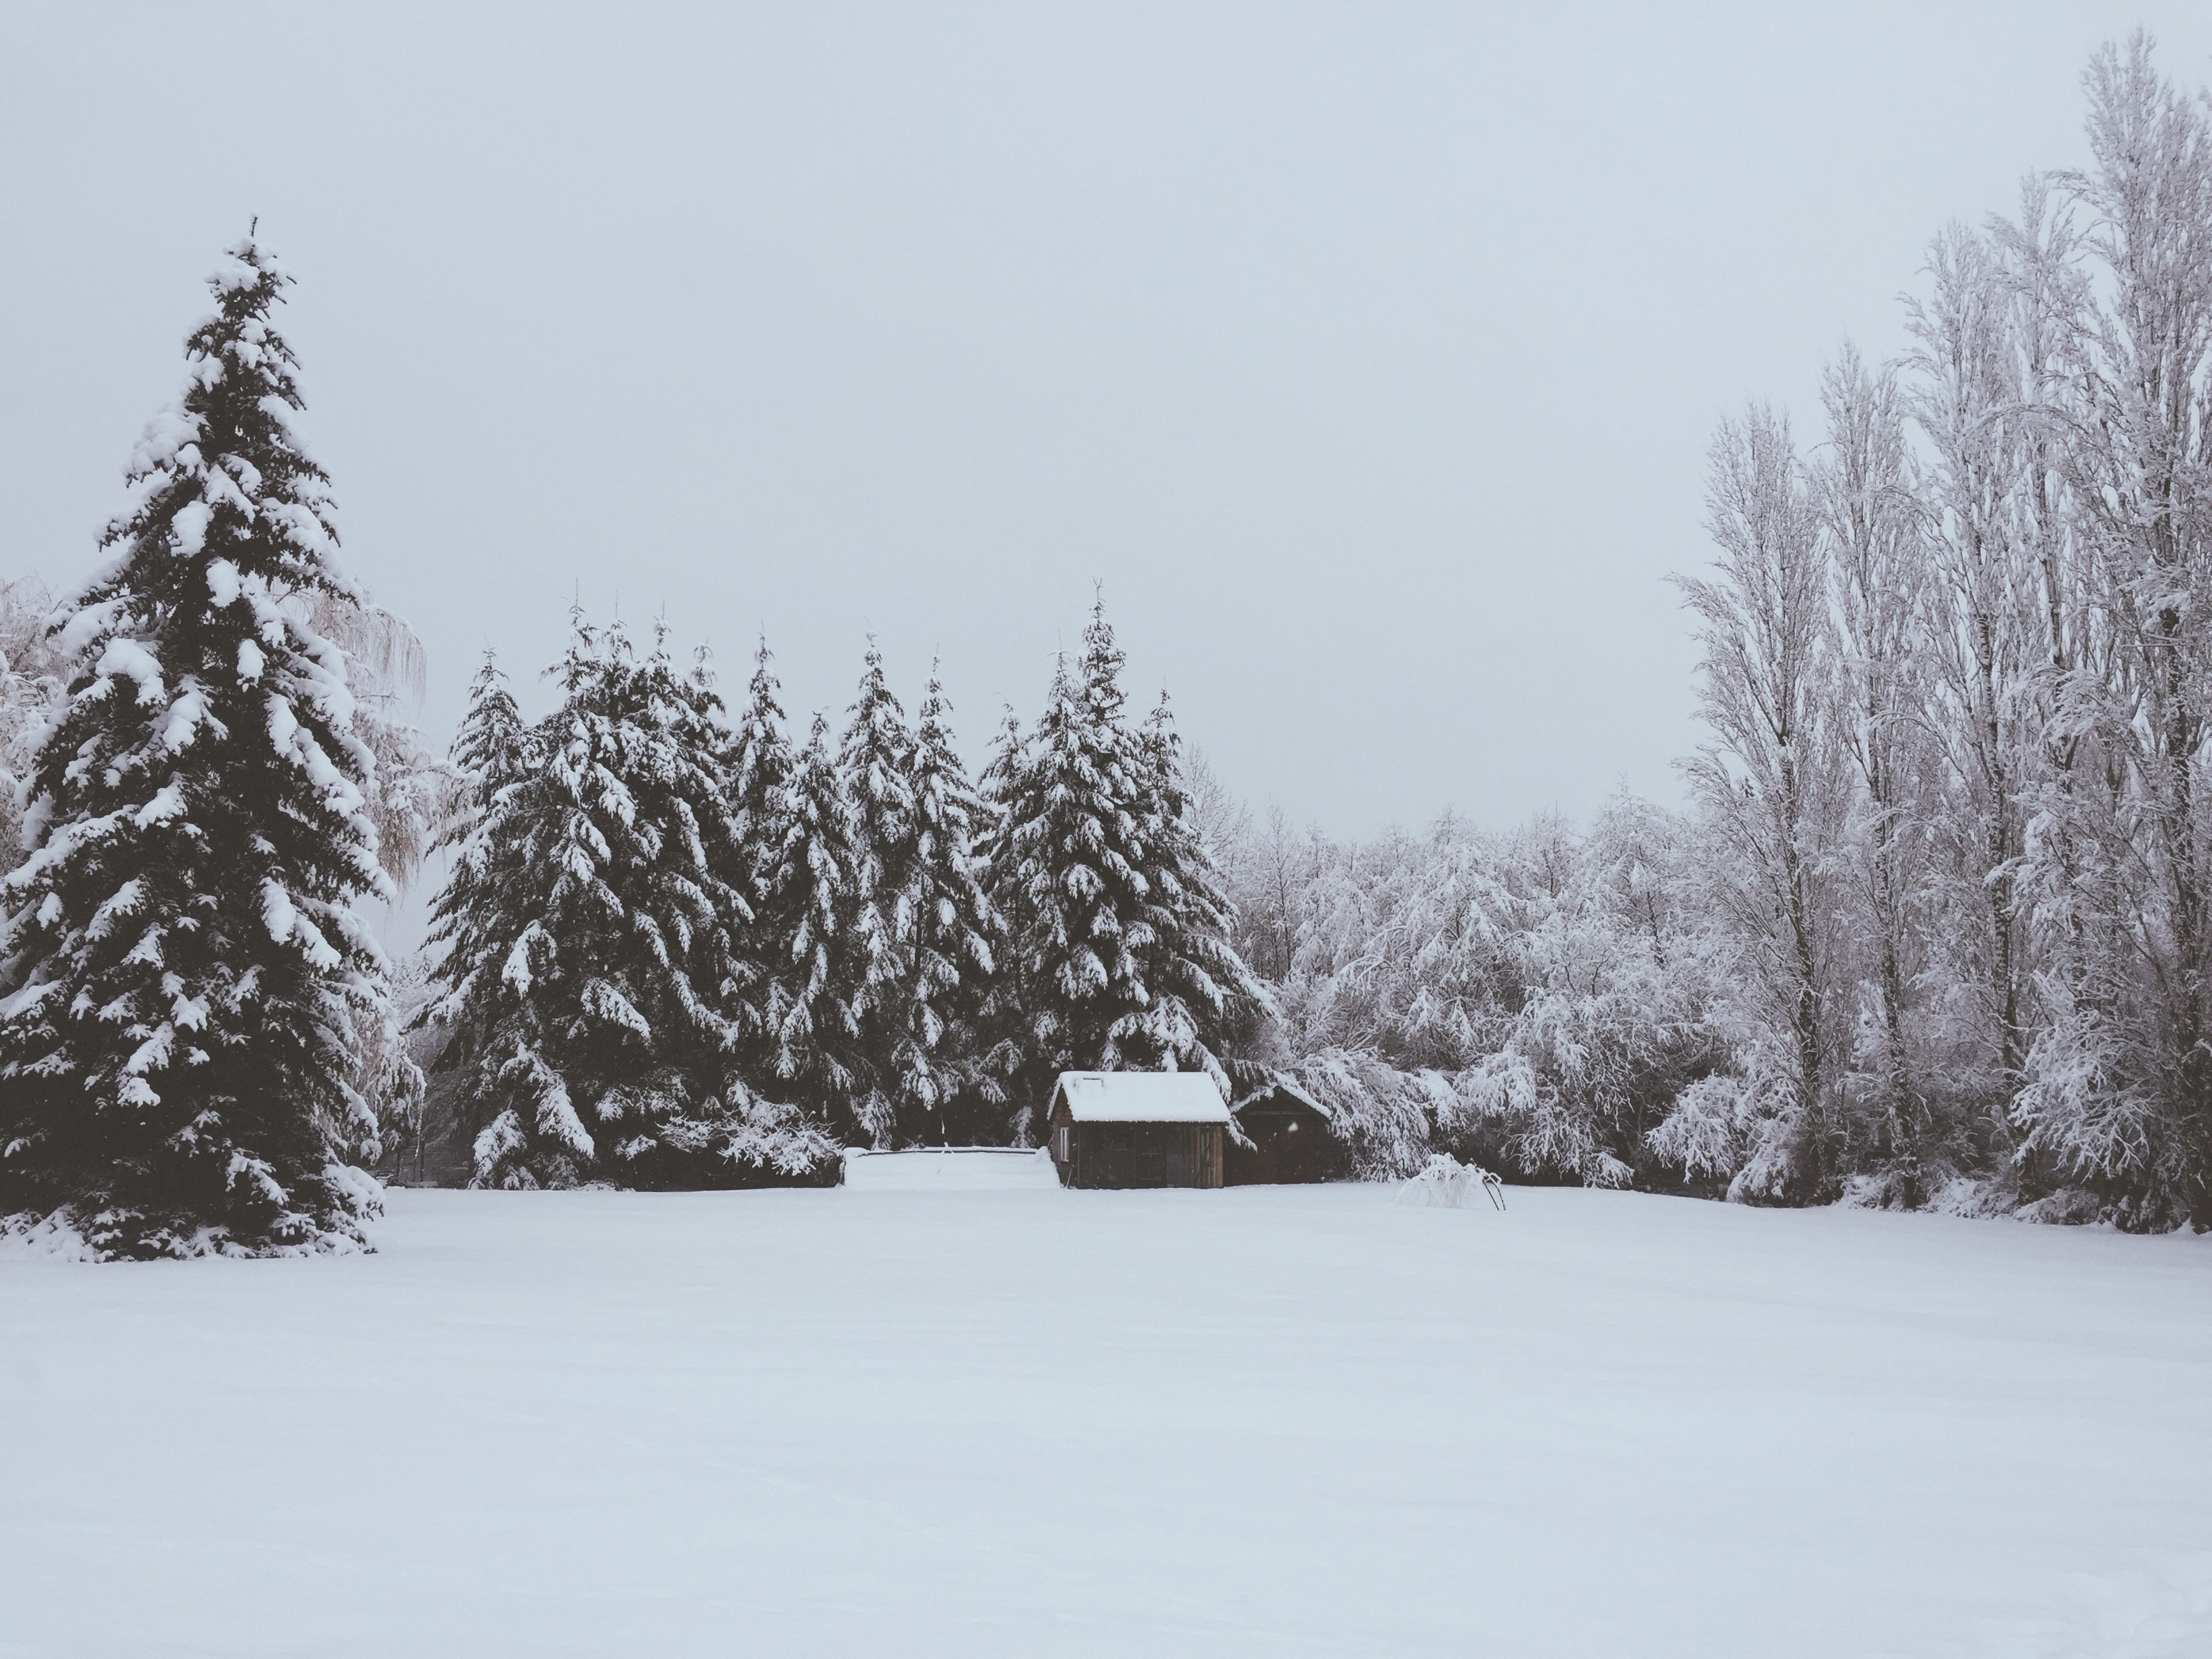 Every year has four seasons. So too does every full lifetime. Here I share with you some thoughts on the four seasons of life from birth to death, the significance of each one, and why we should always be grateful for whatever season we're in at the moment.